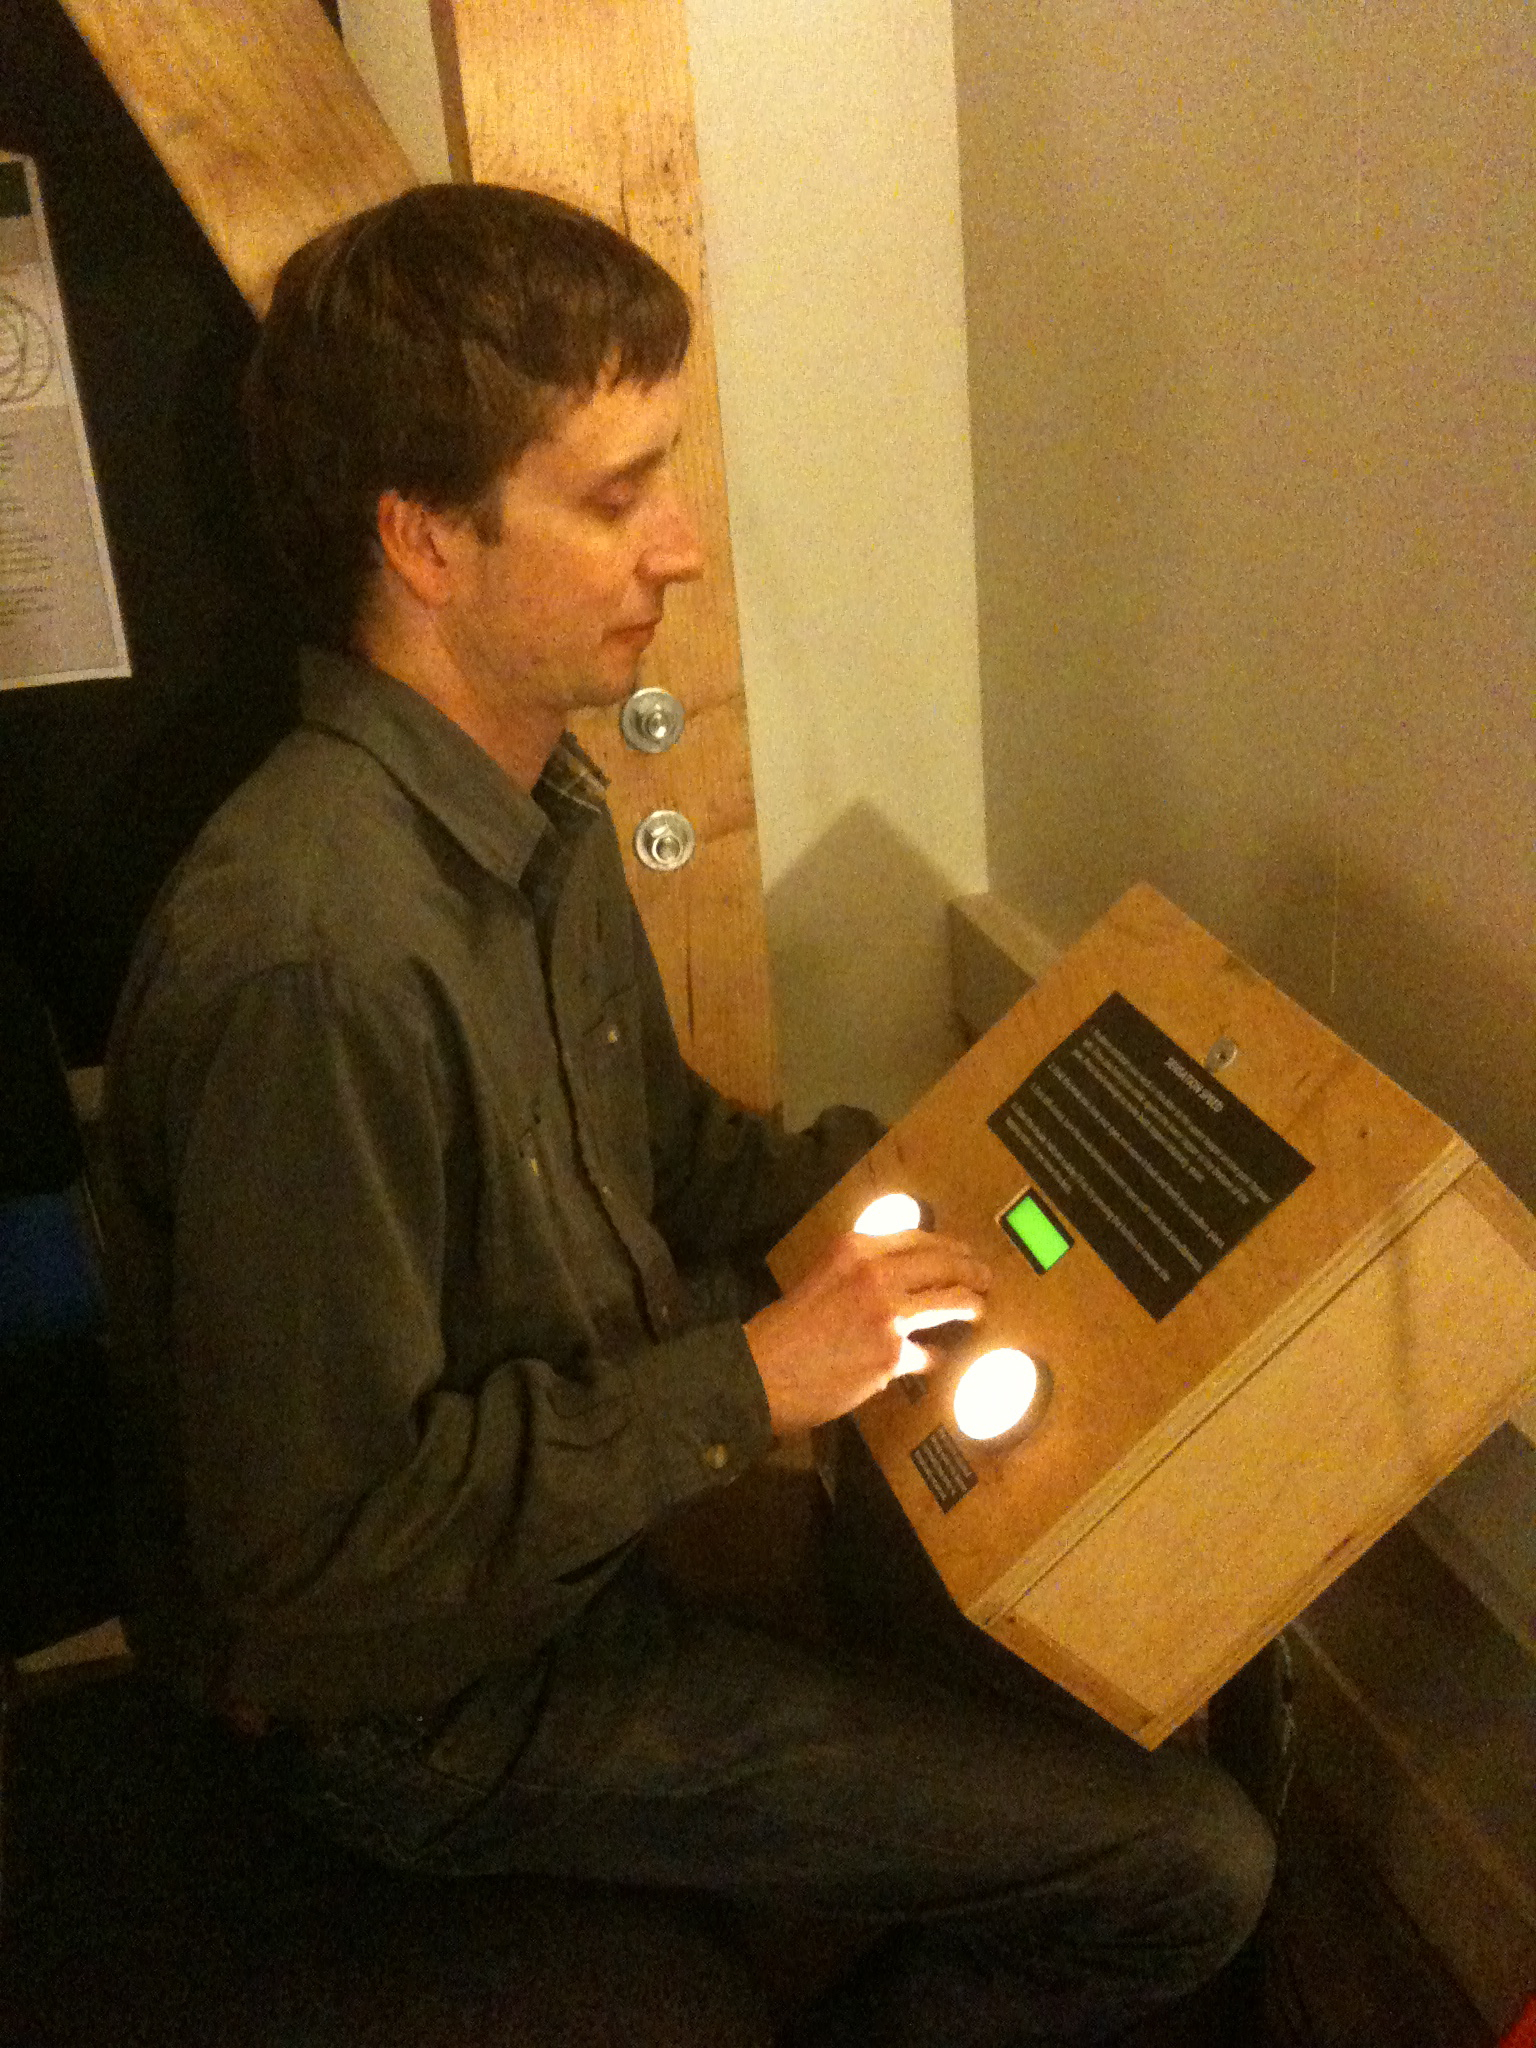 Visitor adjusts delay between shoulder and ankle tappers, until tapping feels simultaneous.  [early prototype]